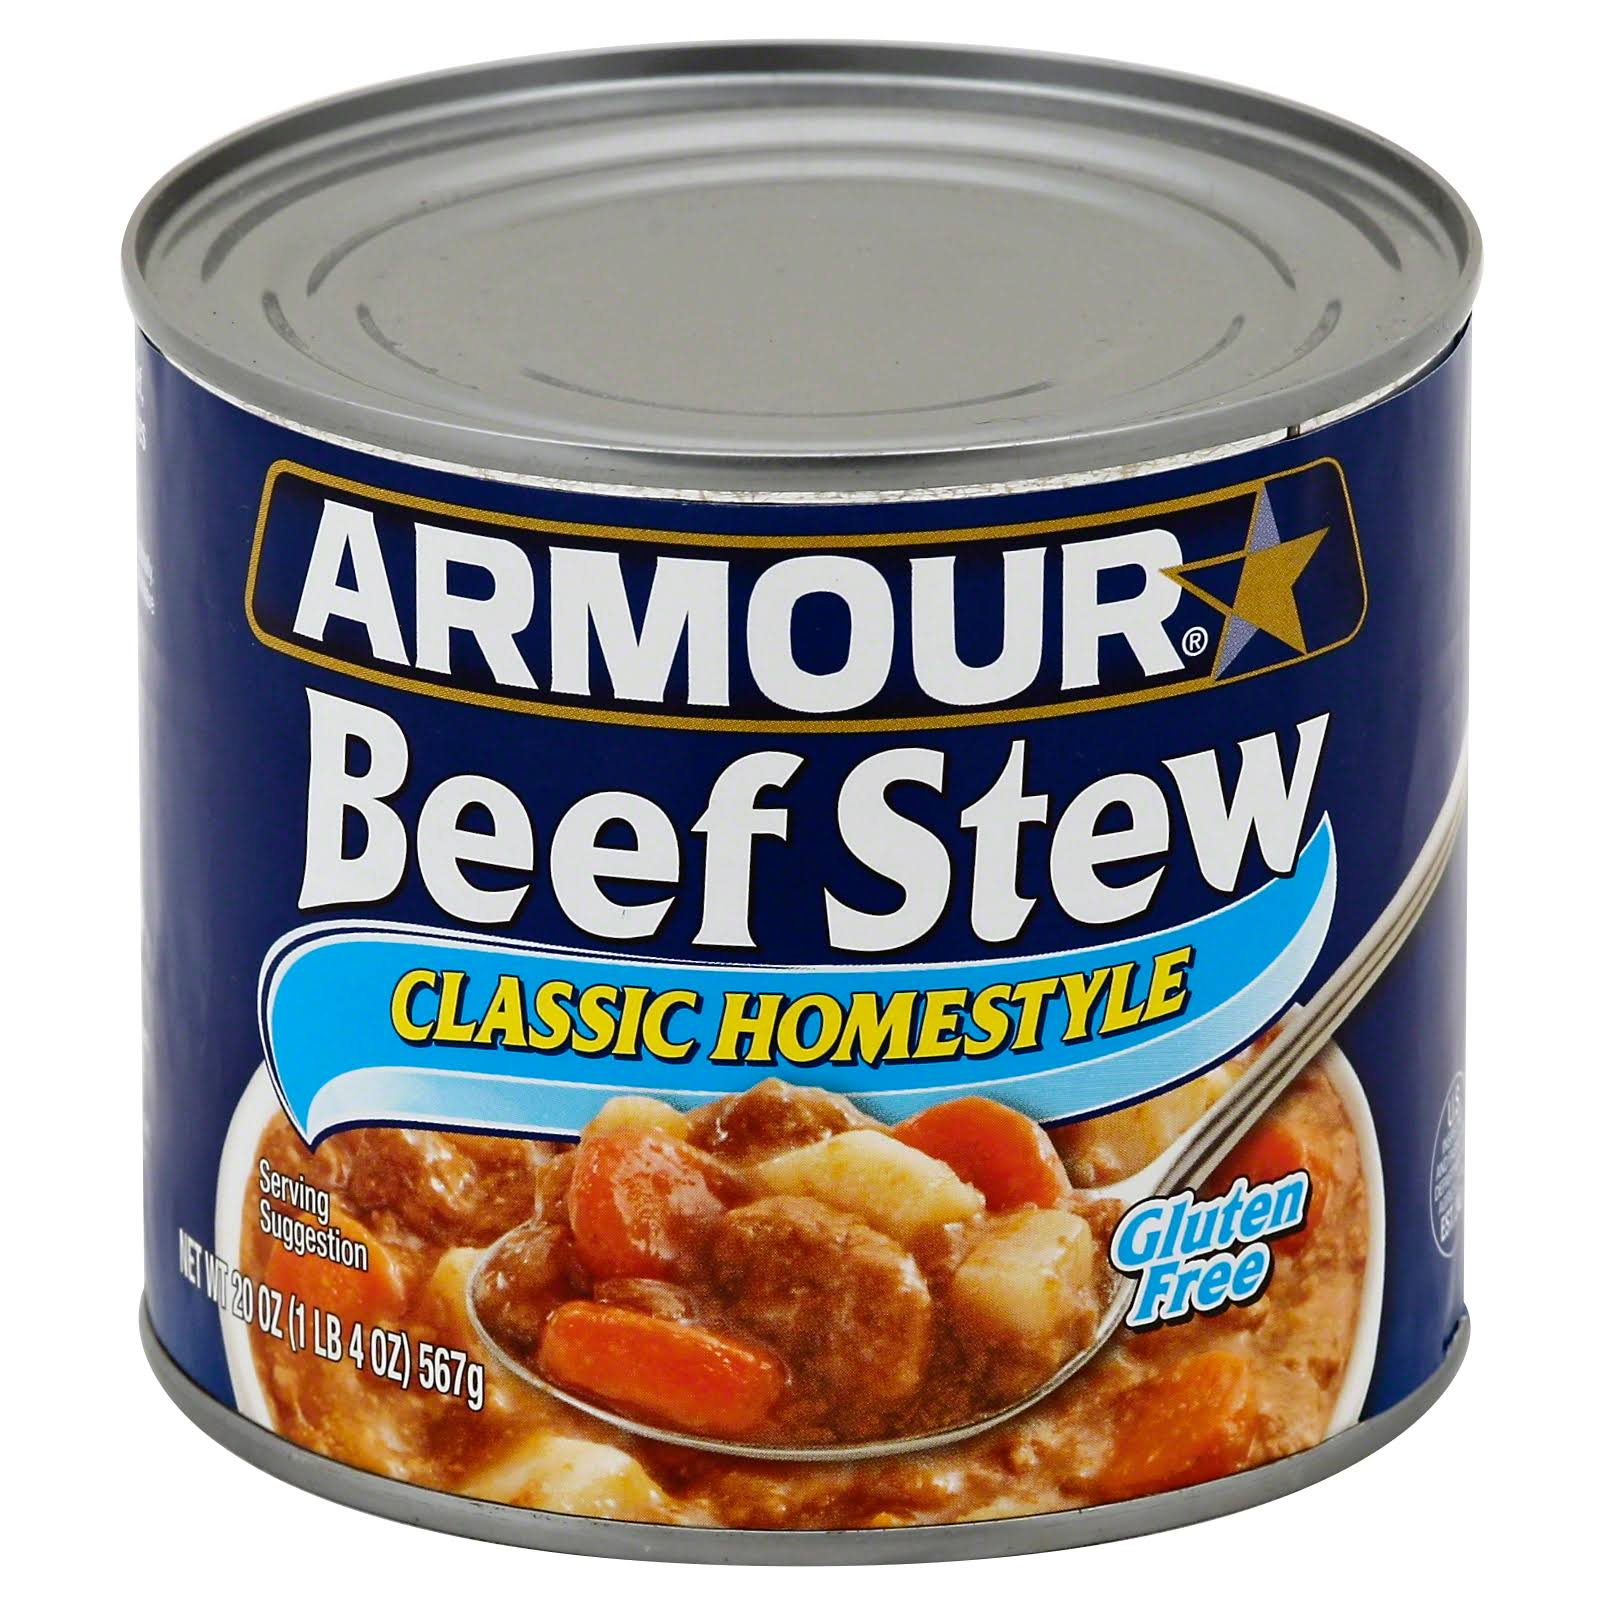 Armour Classic Homestyle Beef Stew - 20oz